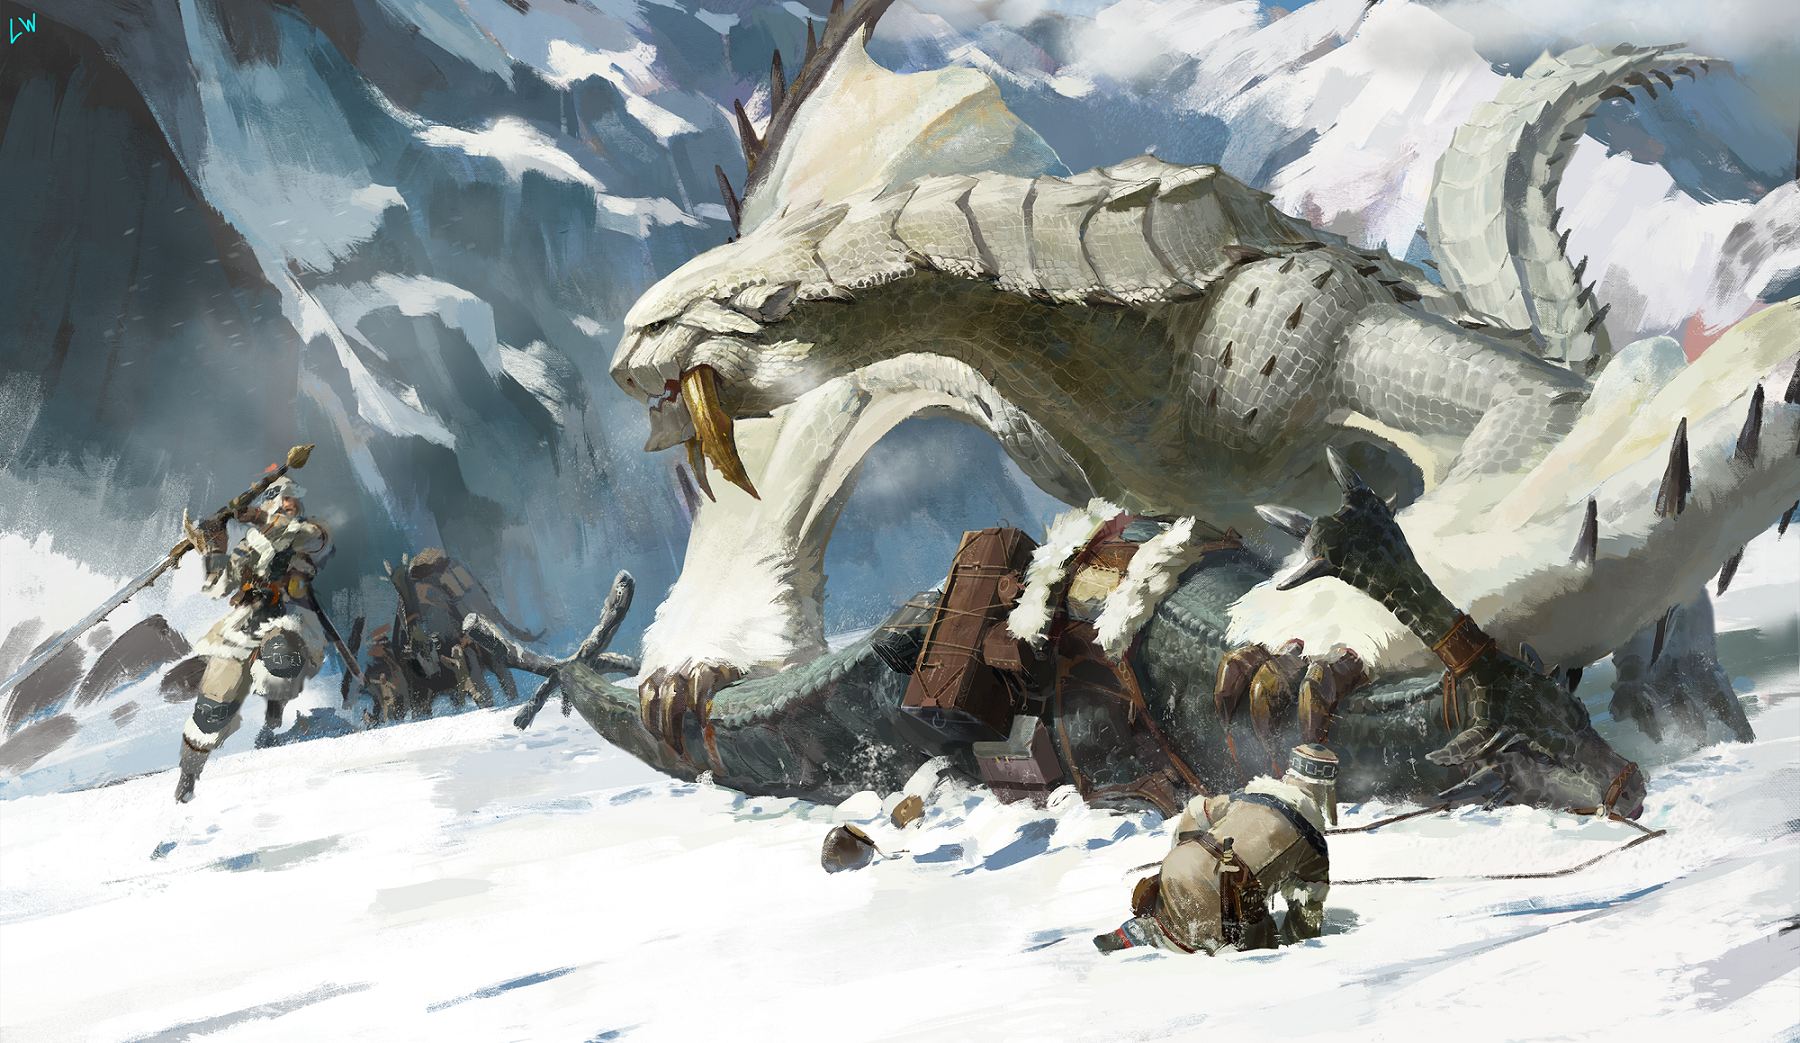 Anime 1800x1043 Monster Hunter heroic fantasy dragon snow